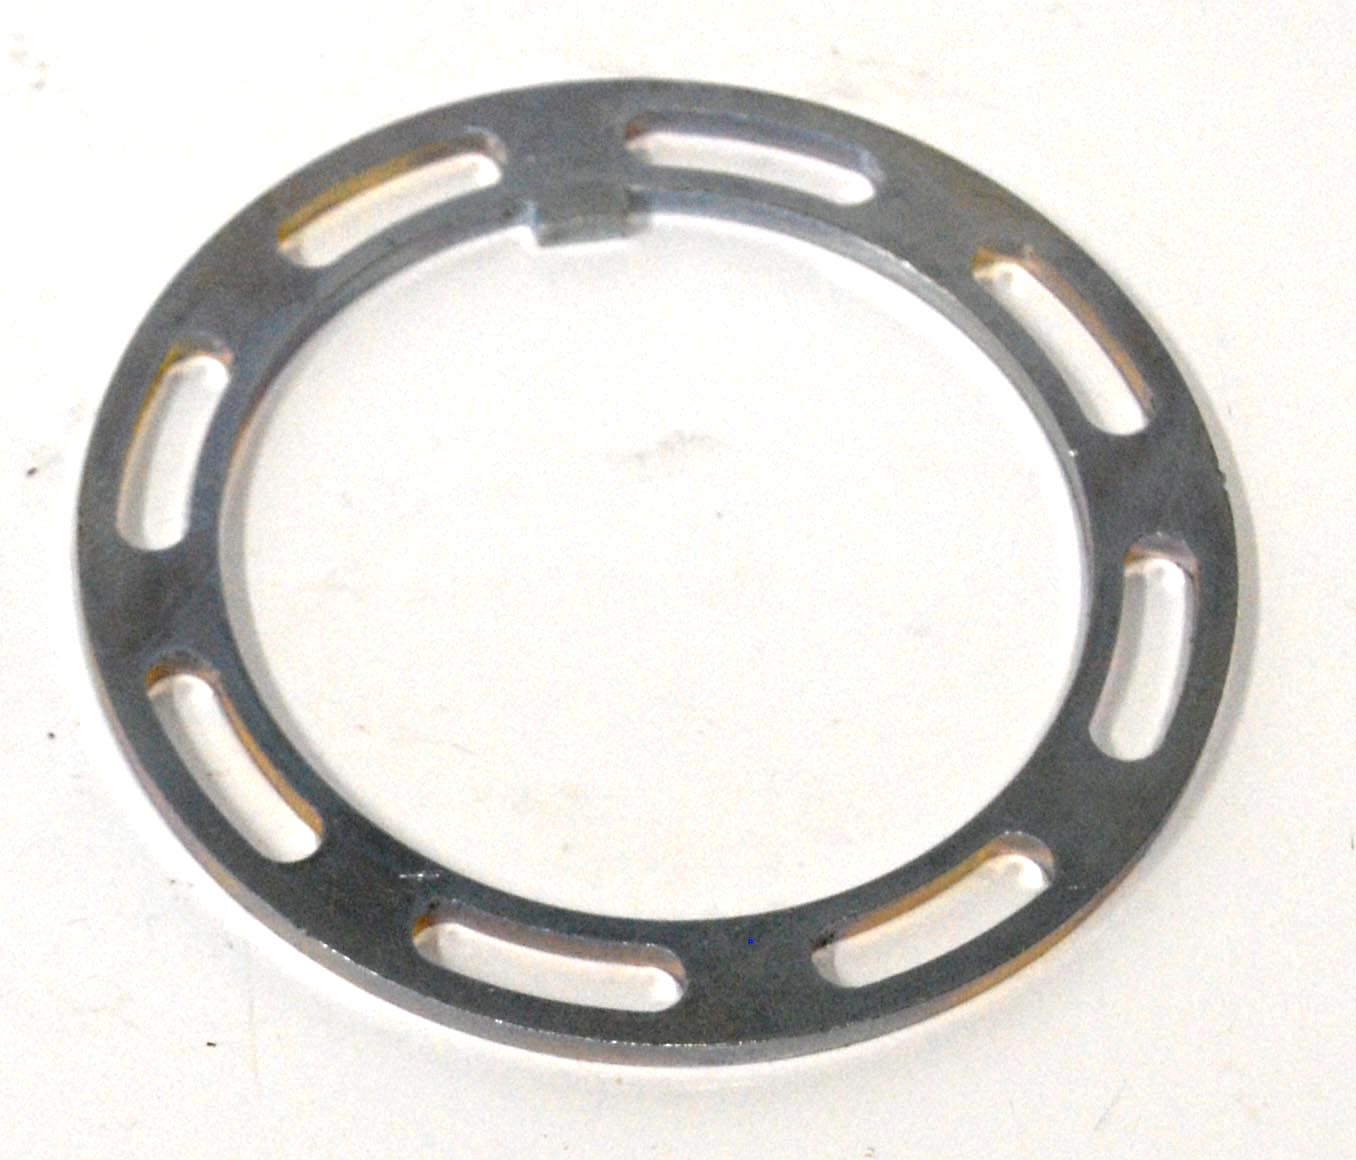 Part # 4277 GN Slotted Lock Washer